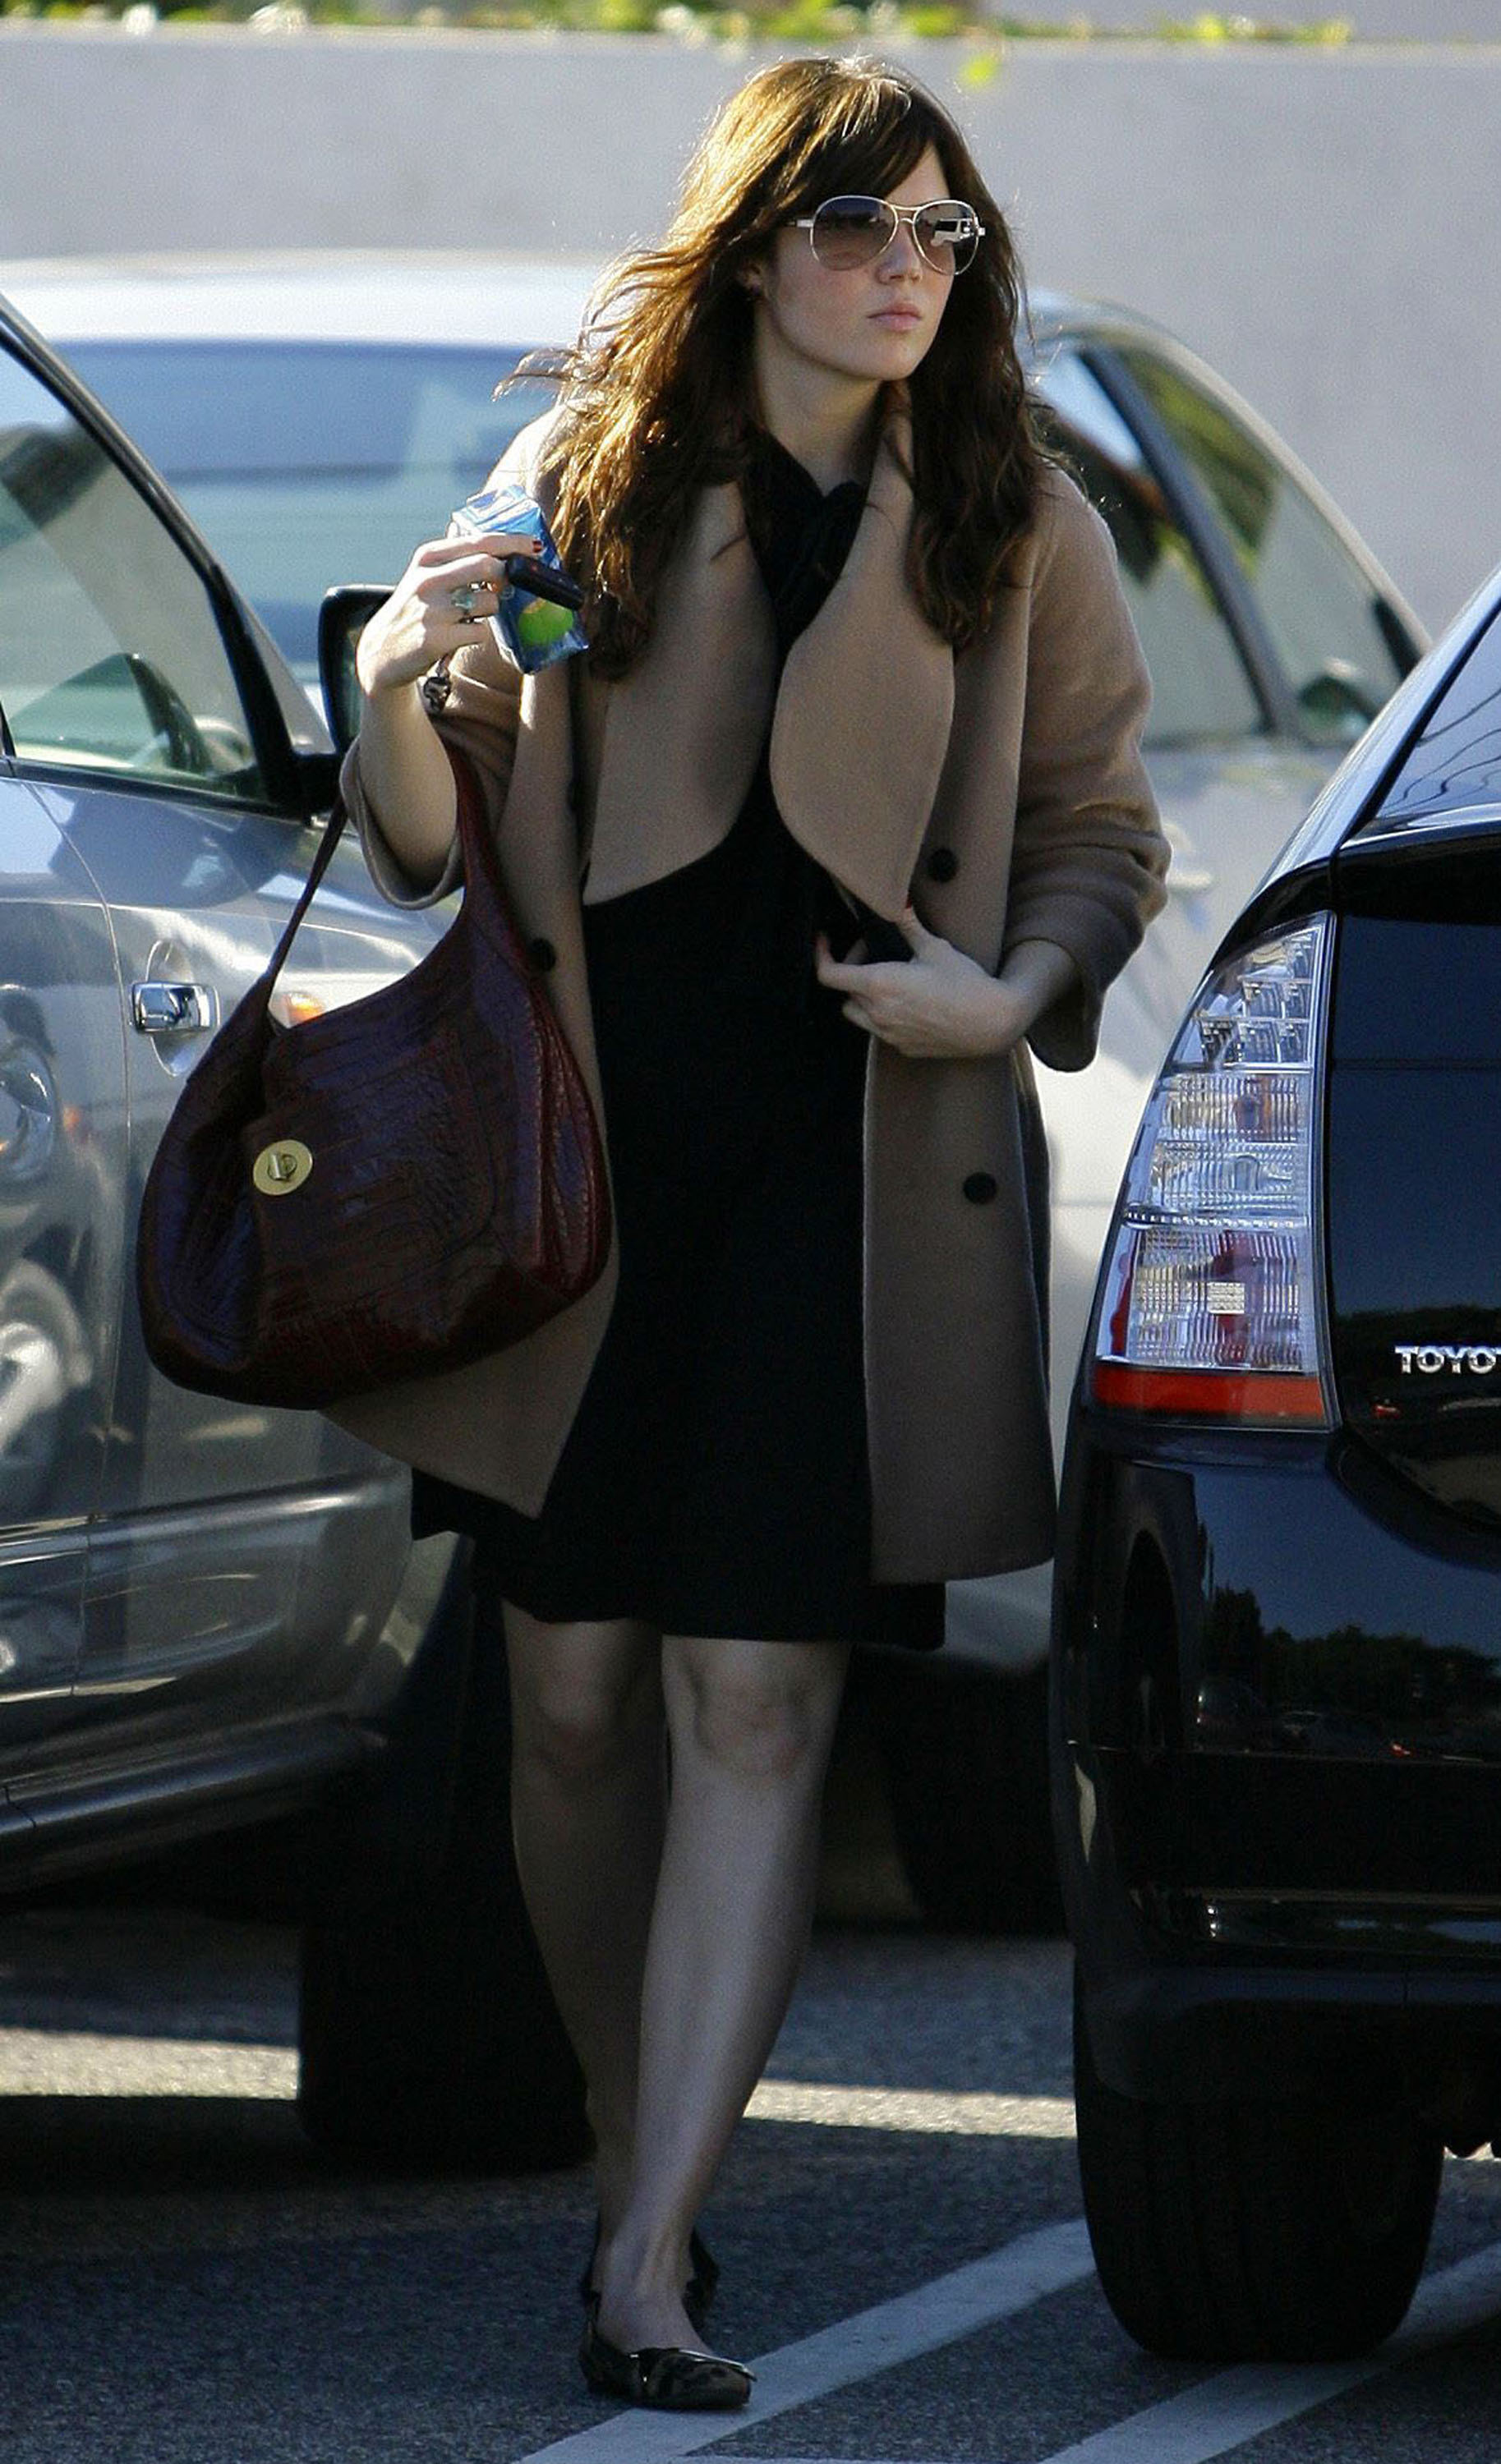 68027_celeb-city.eu_Mandy_Moore_out_and_about_in_West_Hollywood_10.12.2007_23_122_1161lo.jpg